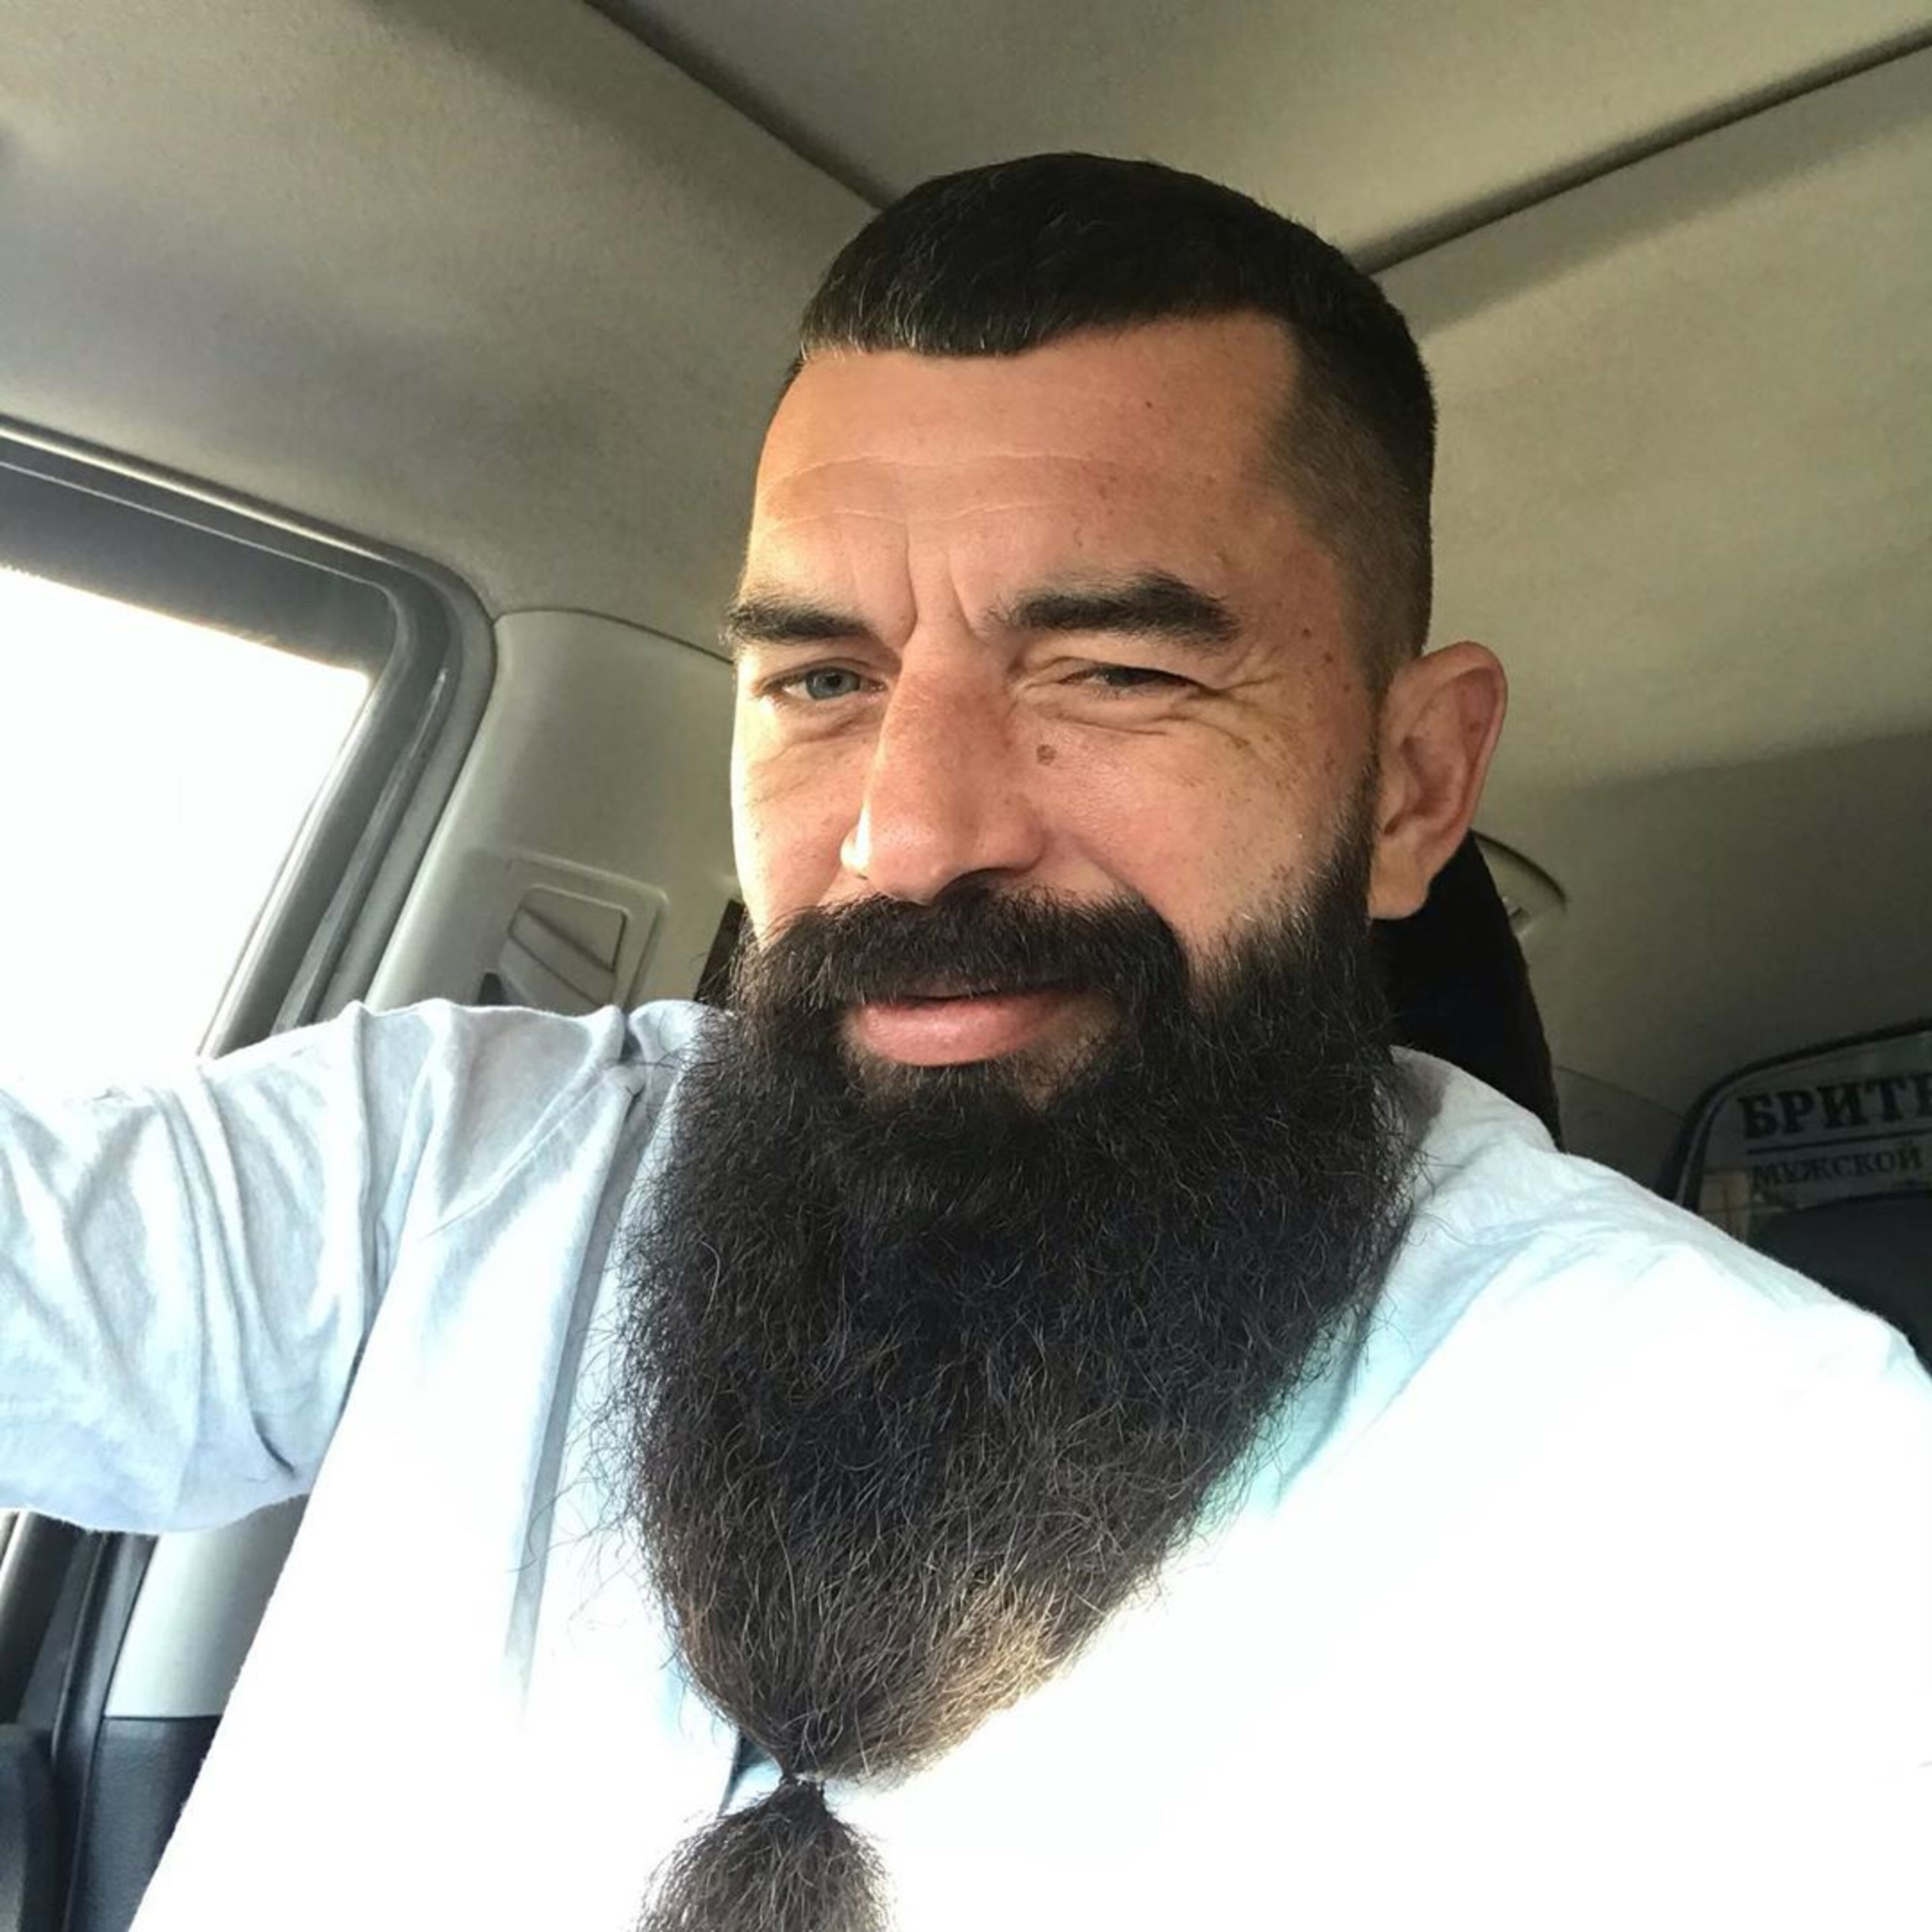 A long beard style with mustache for men.